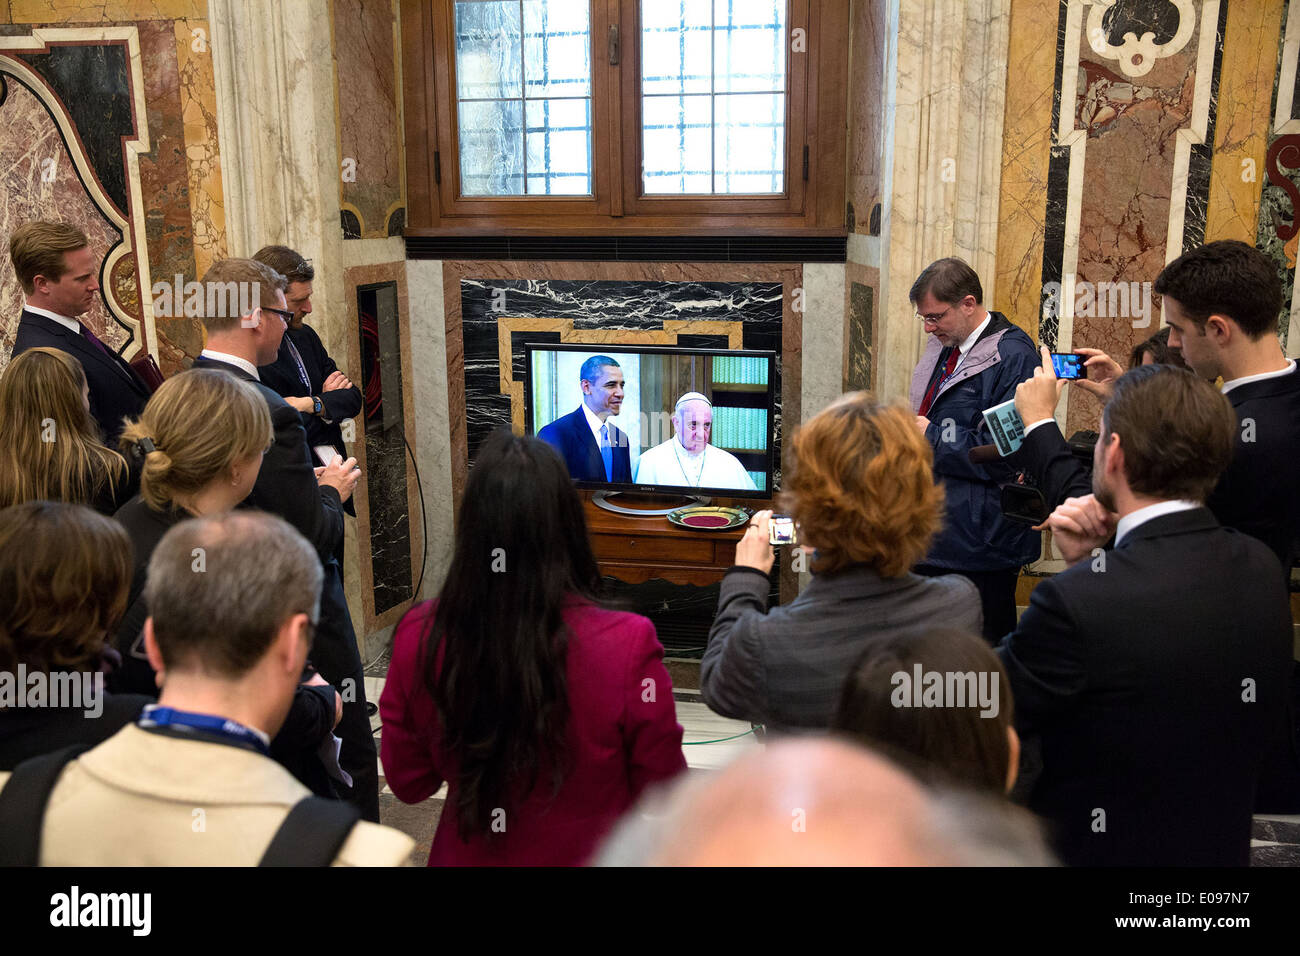 Members of the press watch on closed-circuit television as President Barack Obama meets with Pope Francis at the Vatican, March - Stock Image